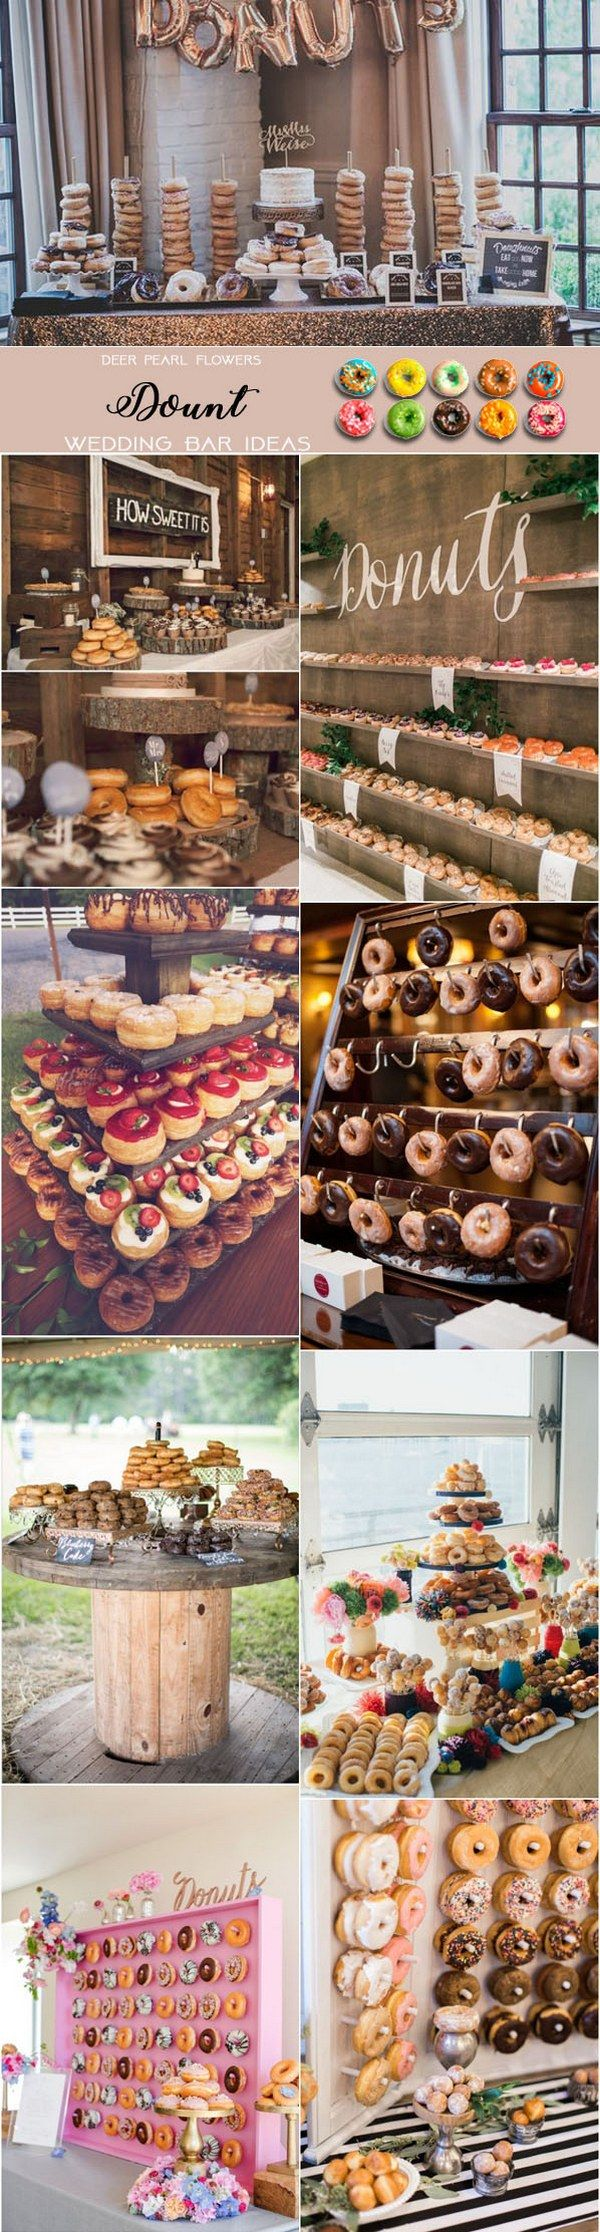 Wedding catering trends top 8 wedding dessert bar ideas for Food bar trends